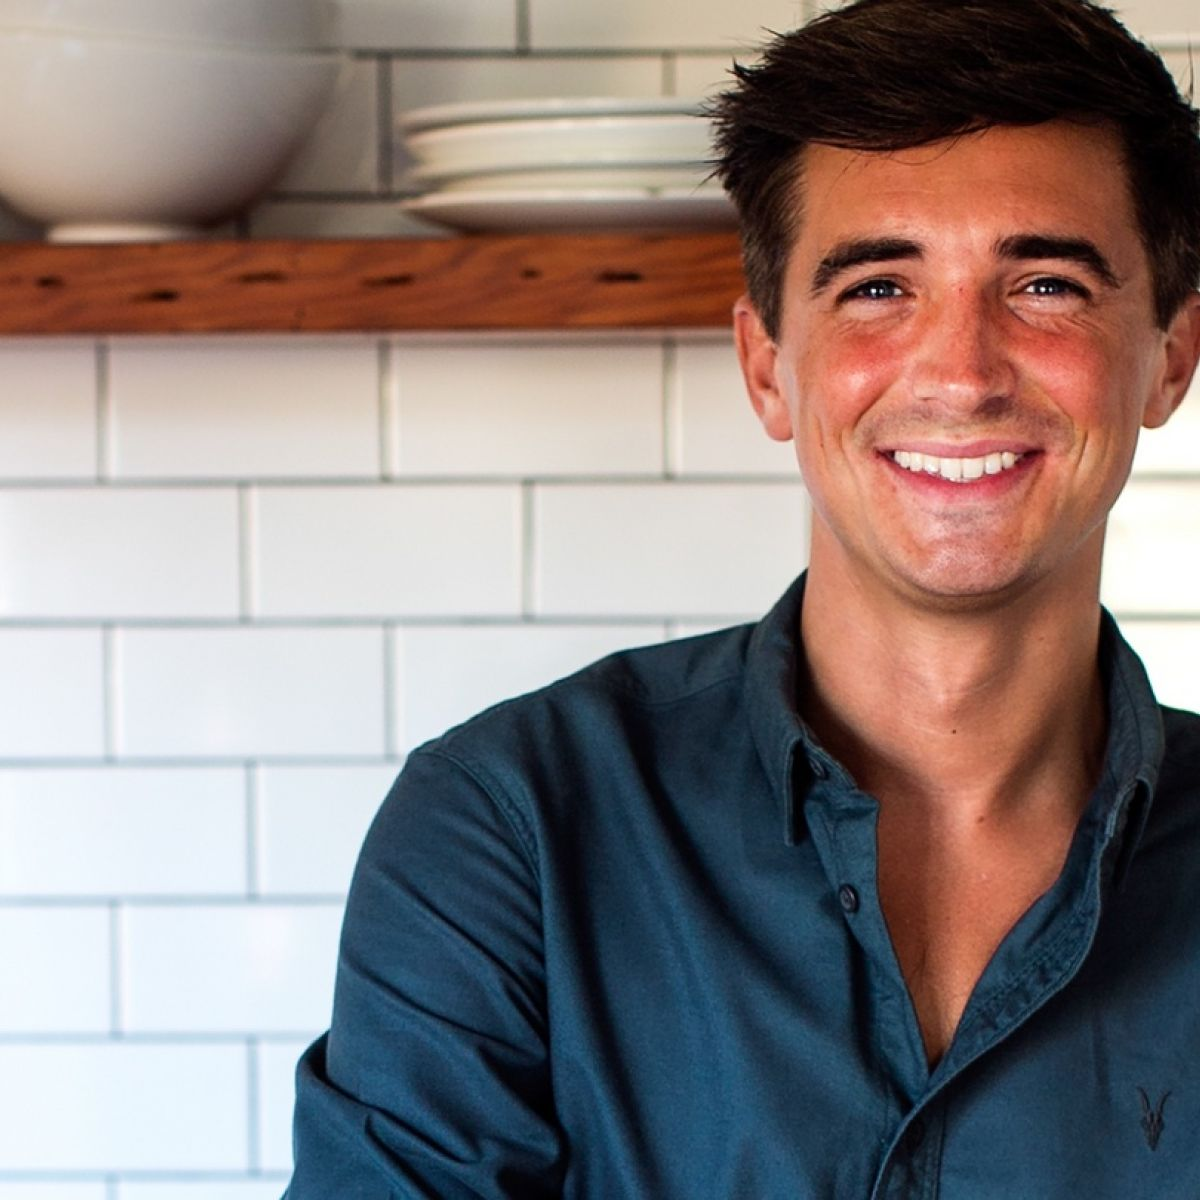 887570c9c5ead A fresh approach to eating in Donal Skehan s new cookbook